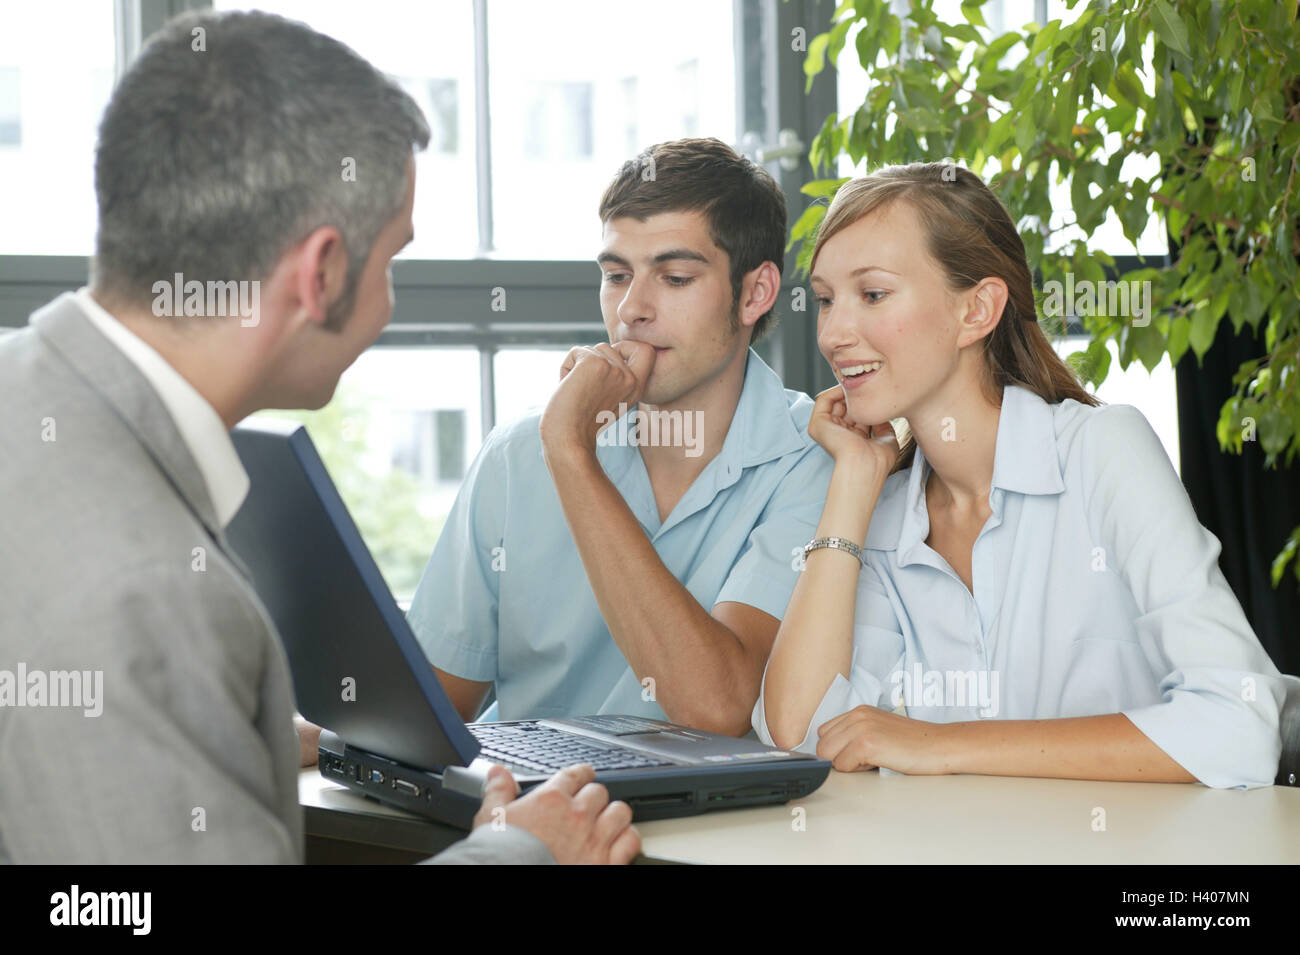 Businessman notebook computer couple young consultation business office man manager banker broker insurance broker - Stock Image